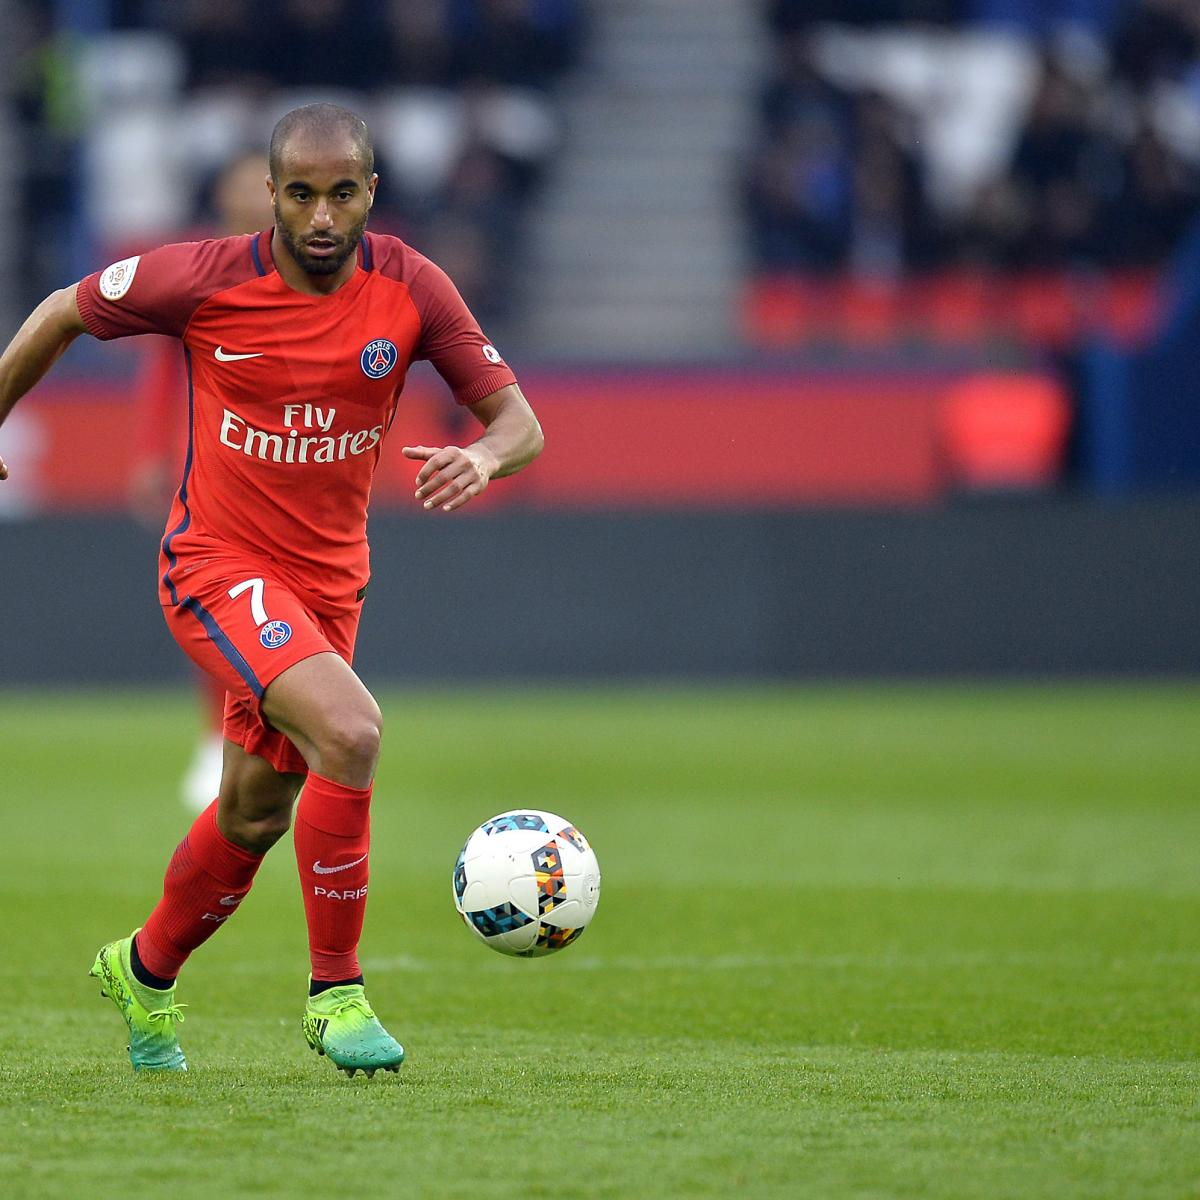 Liverpool Transfer Rumours Lucas Moura Would Signal Reds: PSG Transfer News: Latest Rumours On Lucas Moura And